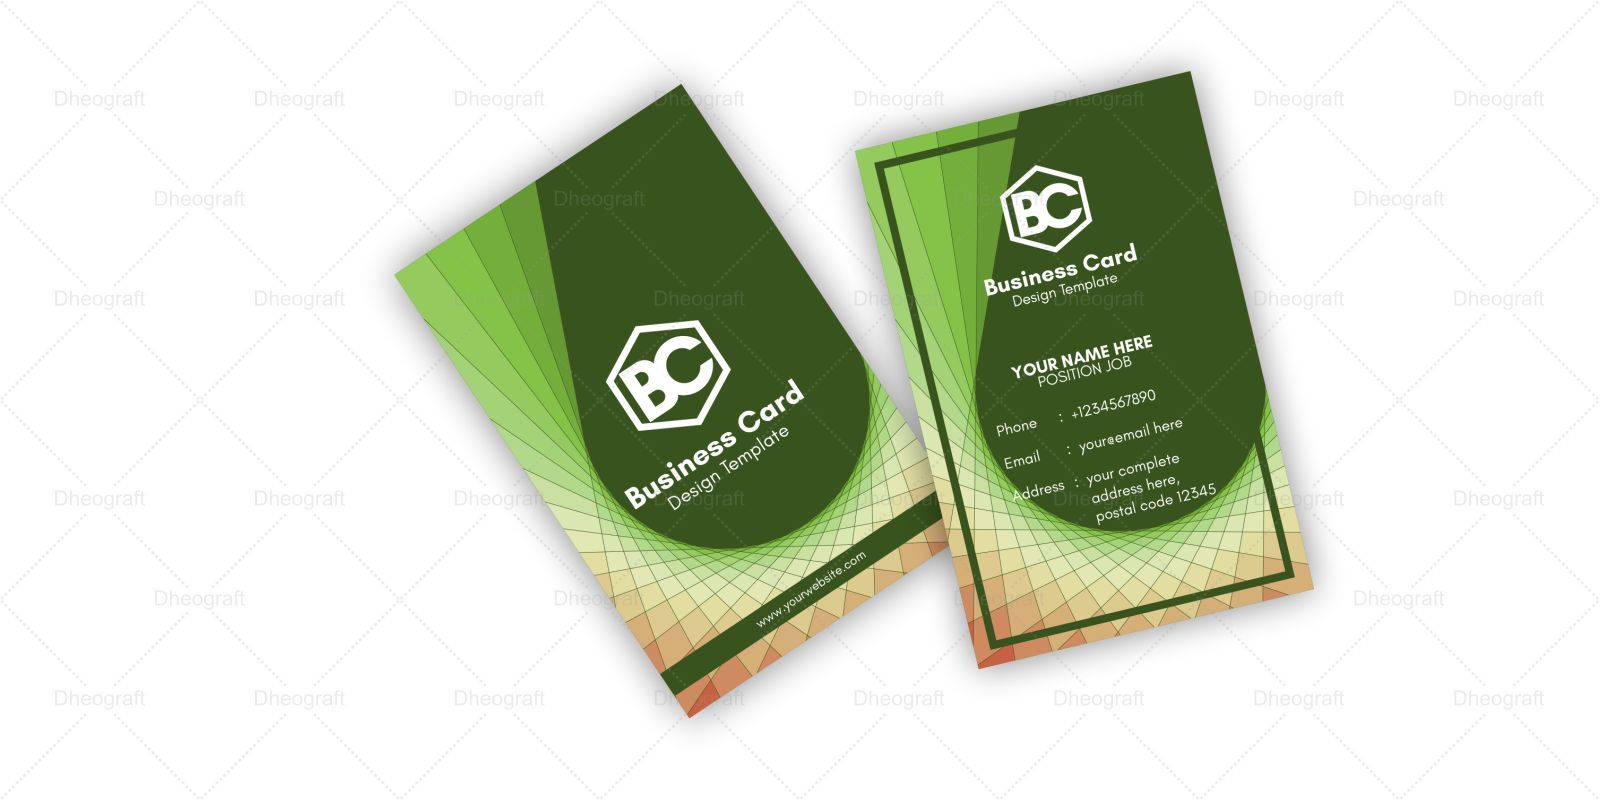 Geometric Spiral Business Card Template Screenshot 1